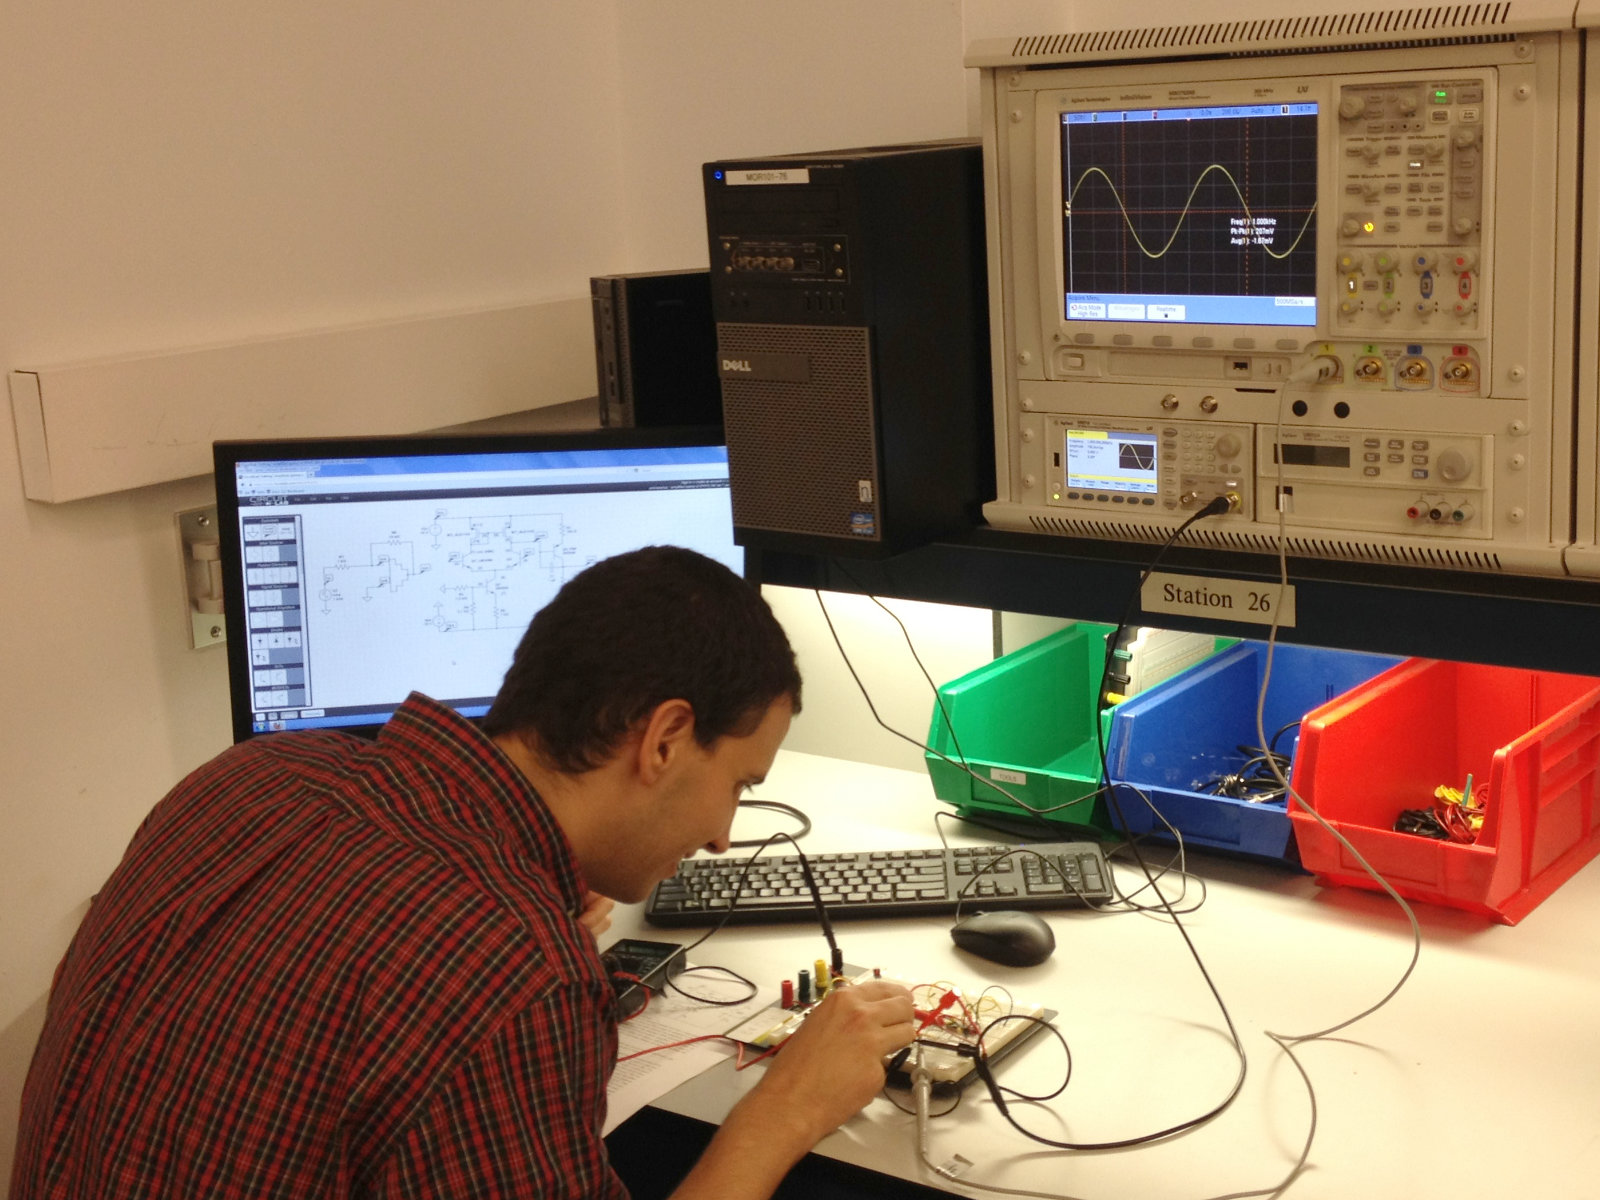 CircuitLab circuit simulator at Penn